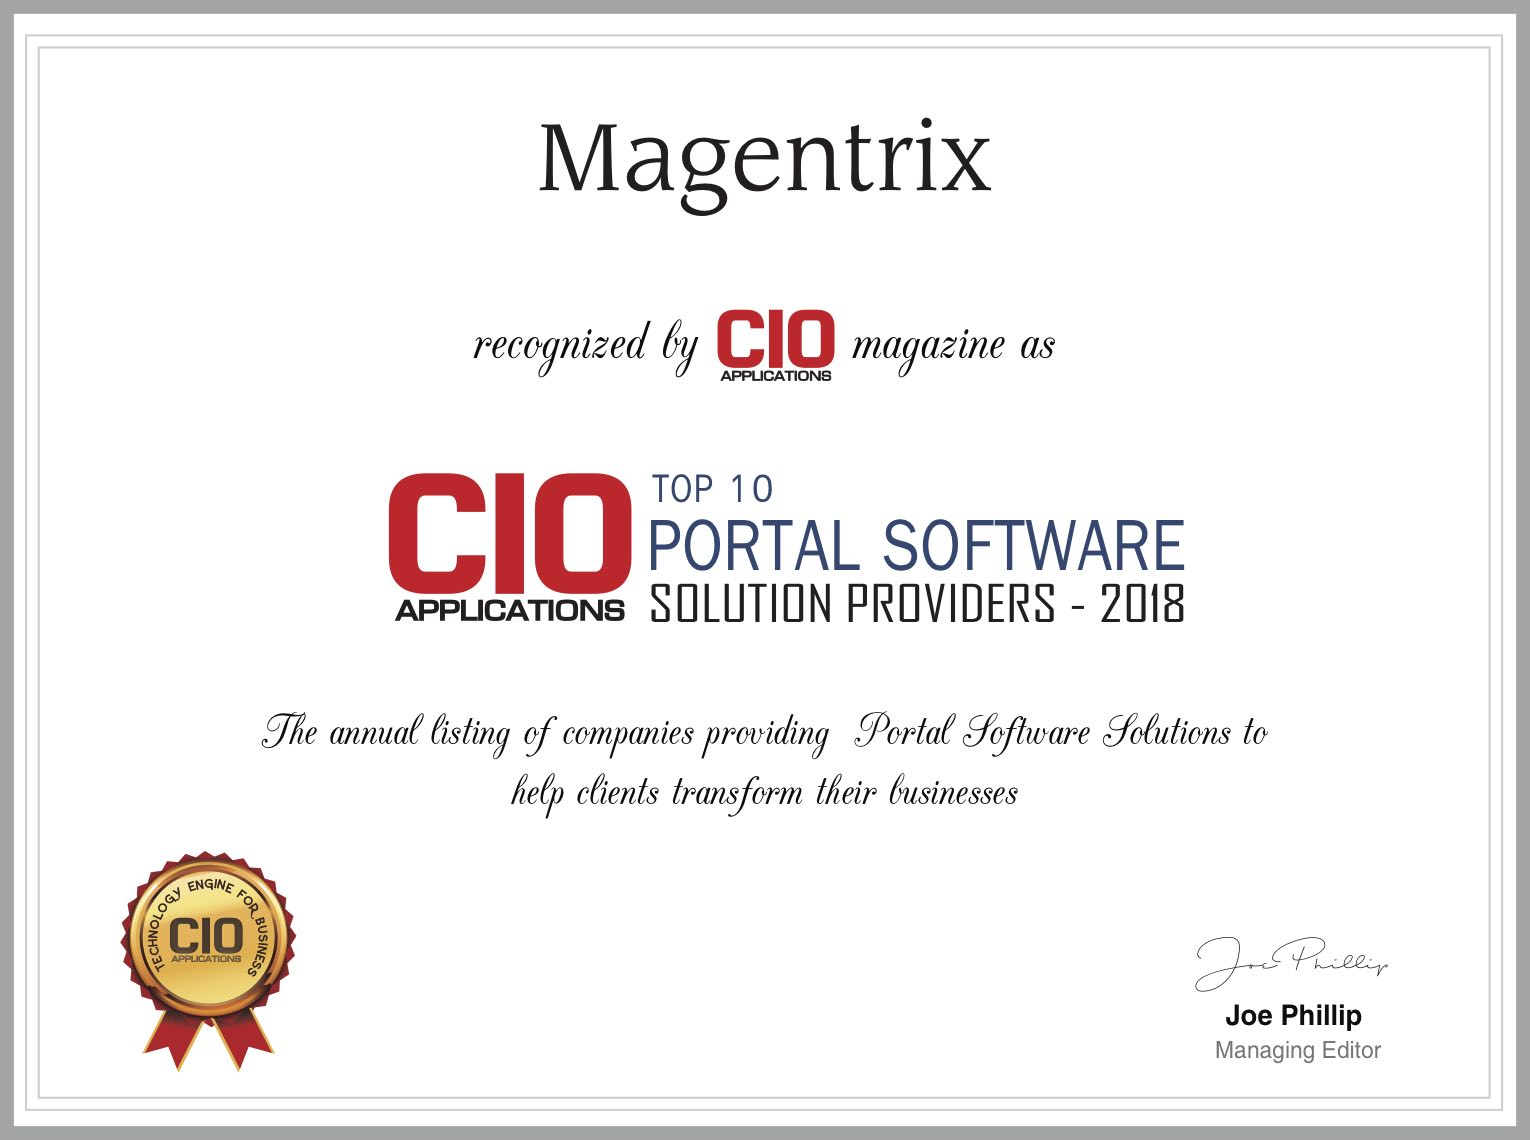 Magentrix Recognized as top 10 portal software solution providers